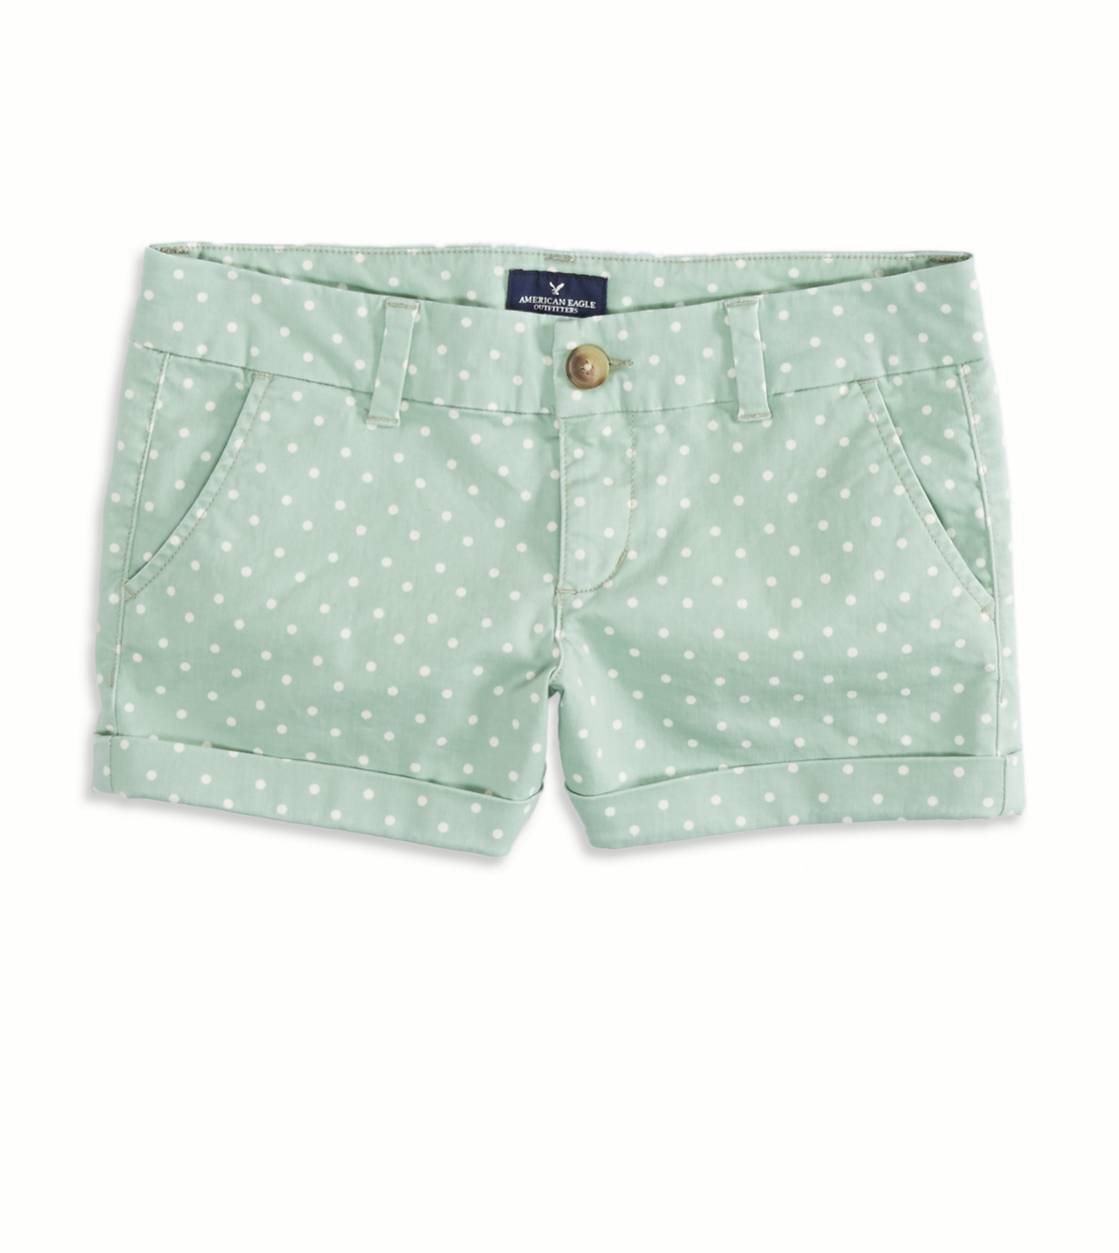 Seafoam AEO Factory Patterned Midi Short